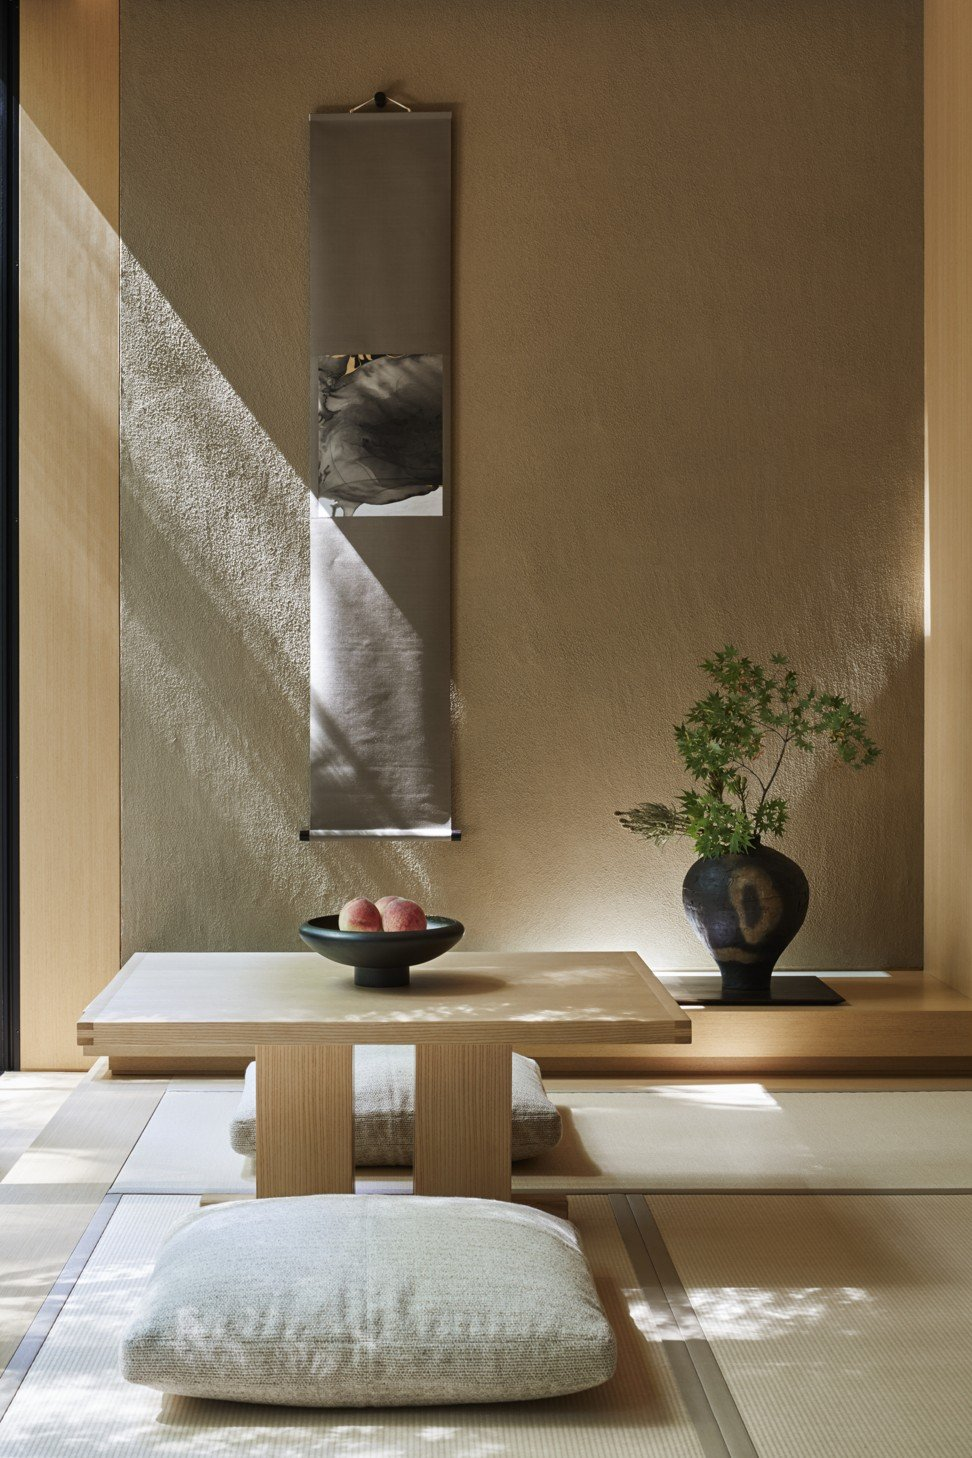 The resort will draw from traditional Japanese aesthetics.